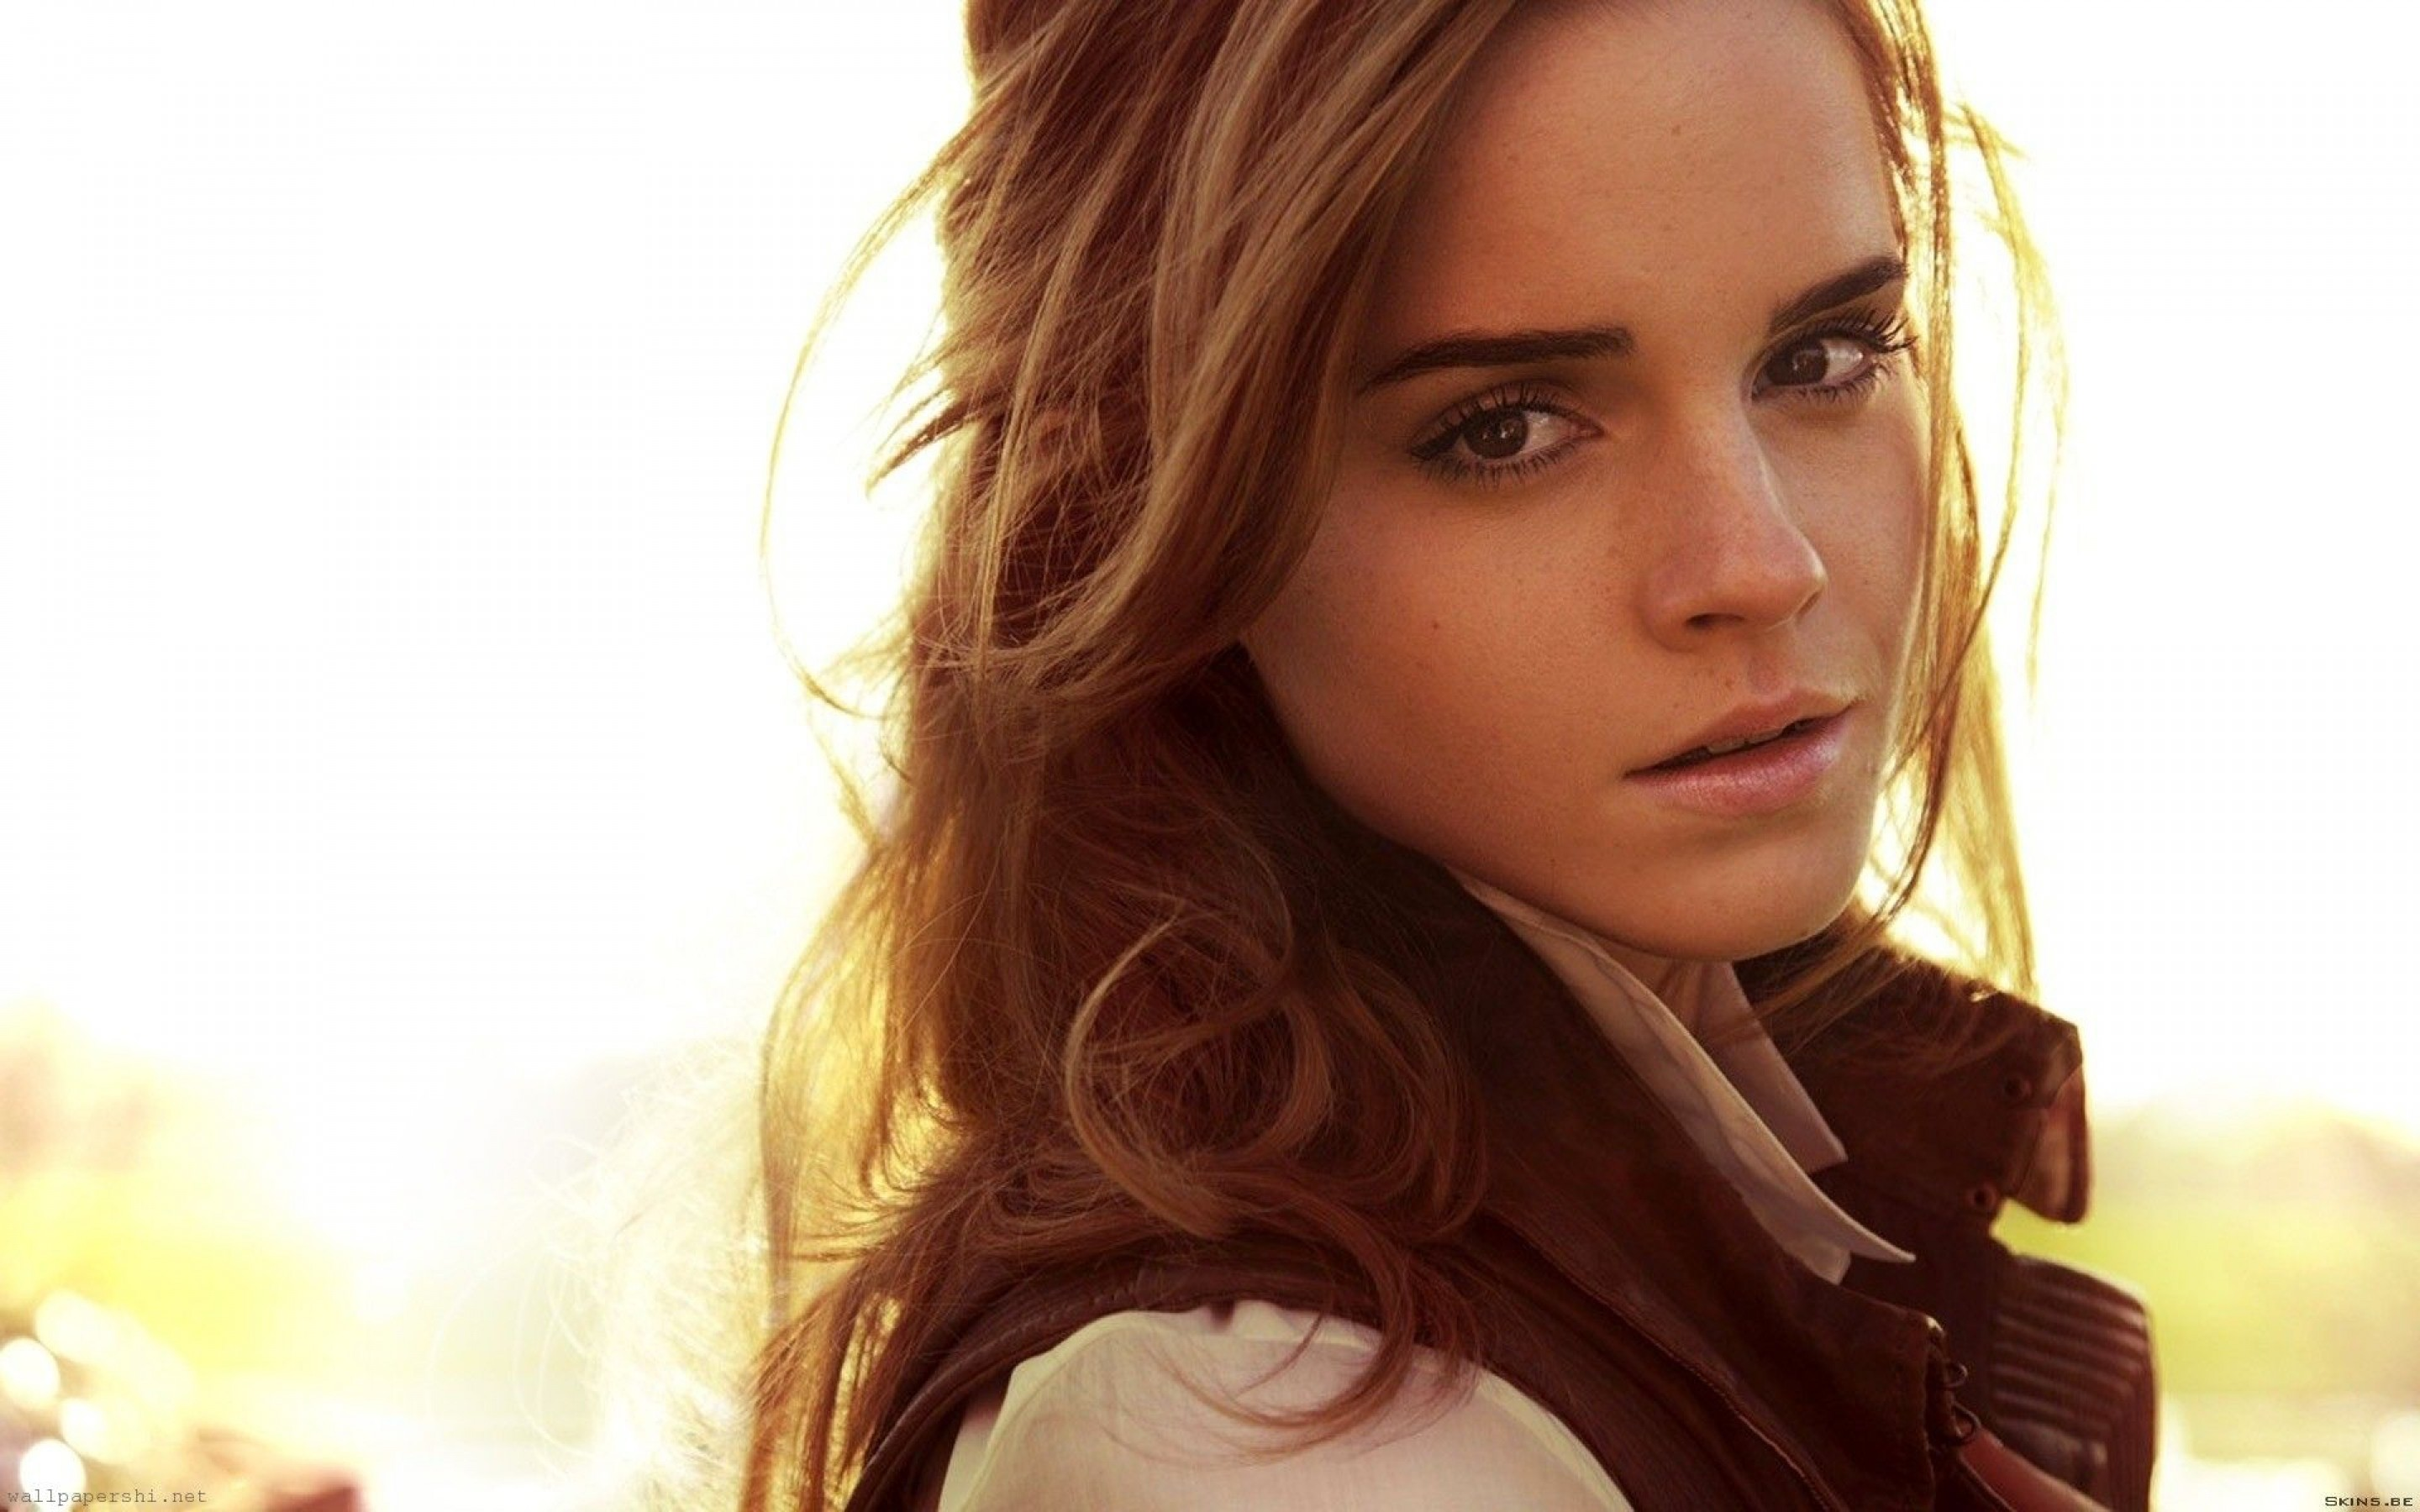 Emma watson wallpapers high resolution and quality download - Emma watson wallpaper free download ...